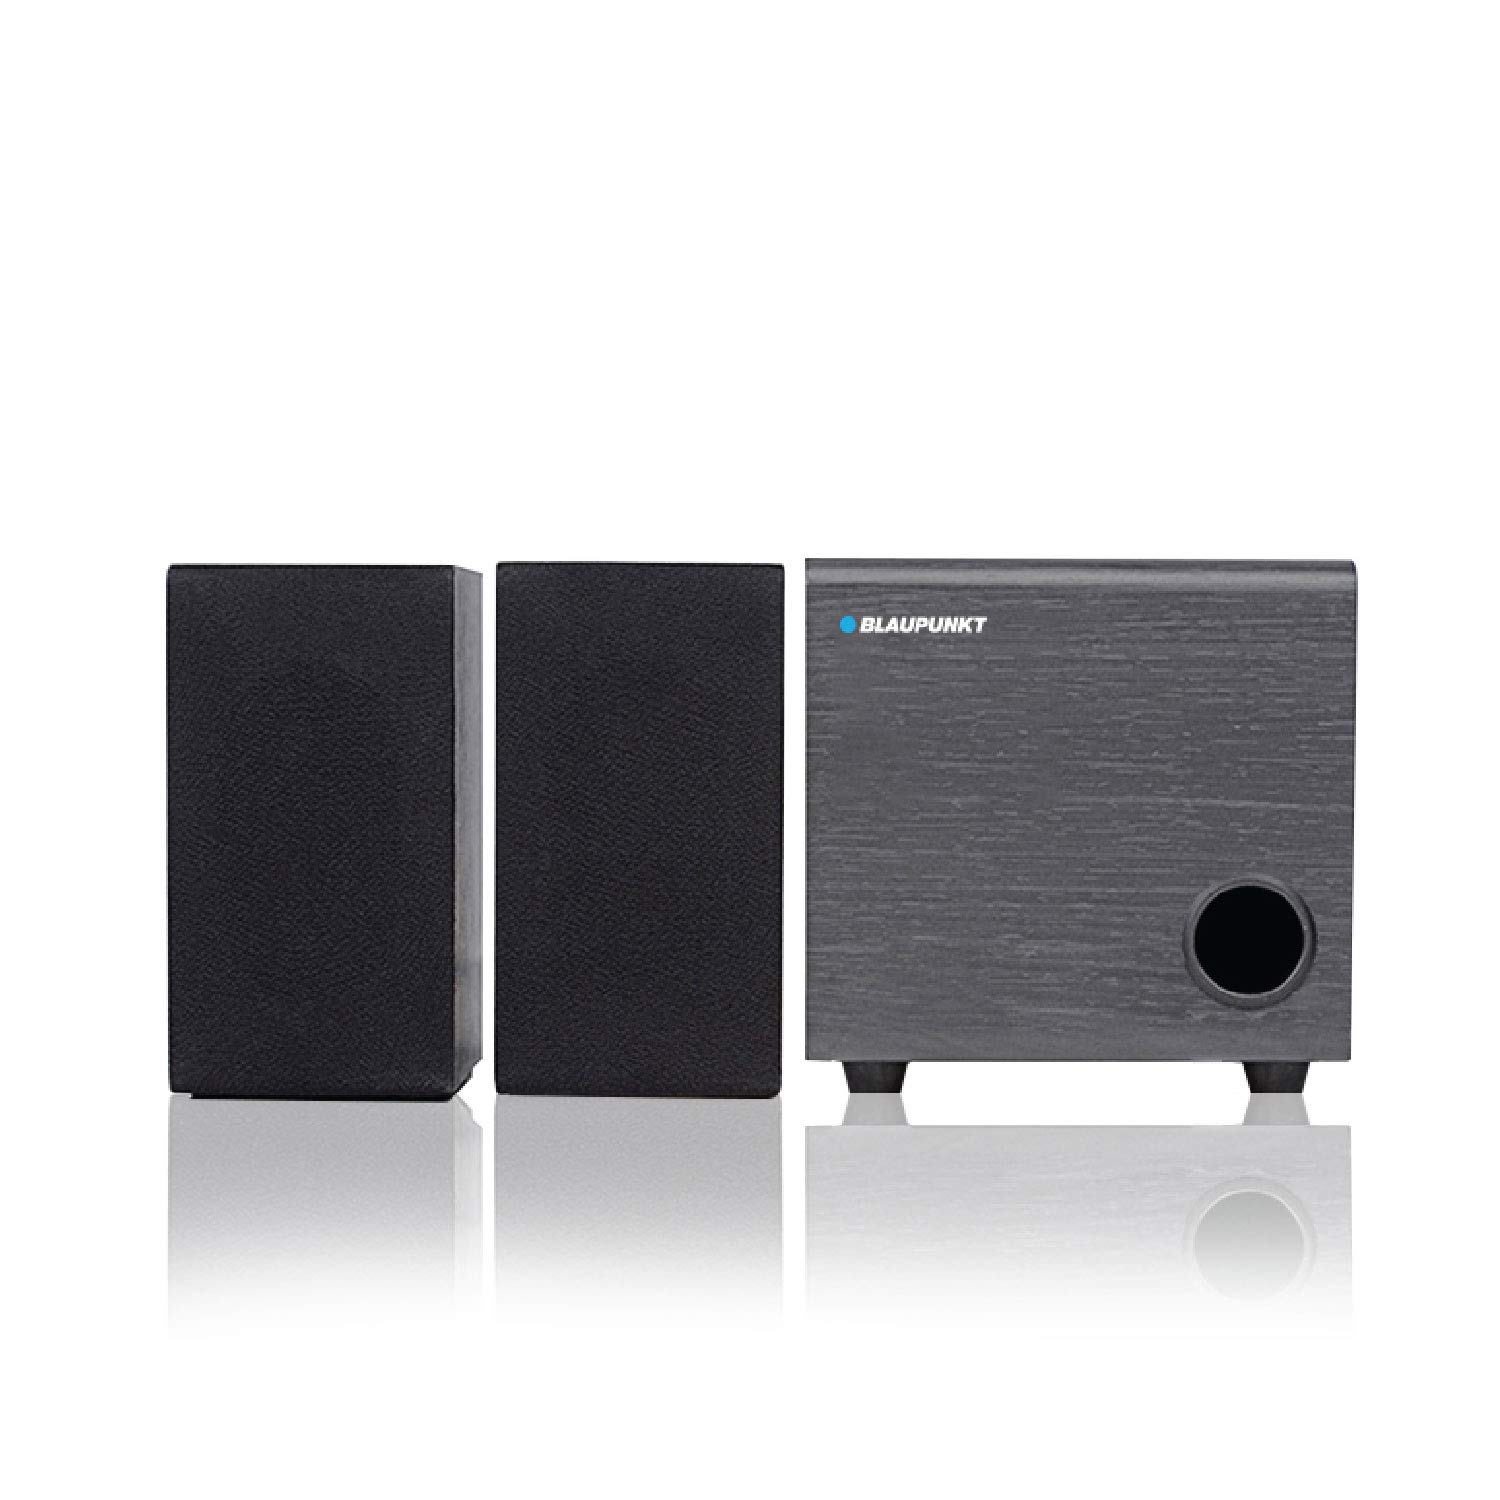 Germany's Blaupunkt SP200 2.1 Speaker with Woofer and AC Input